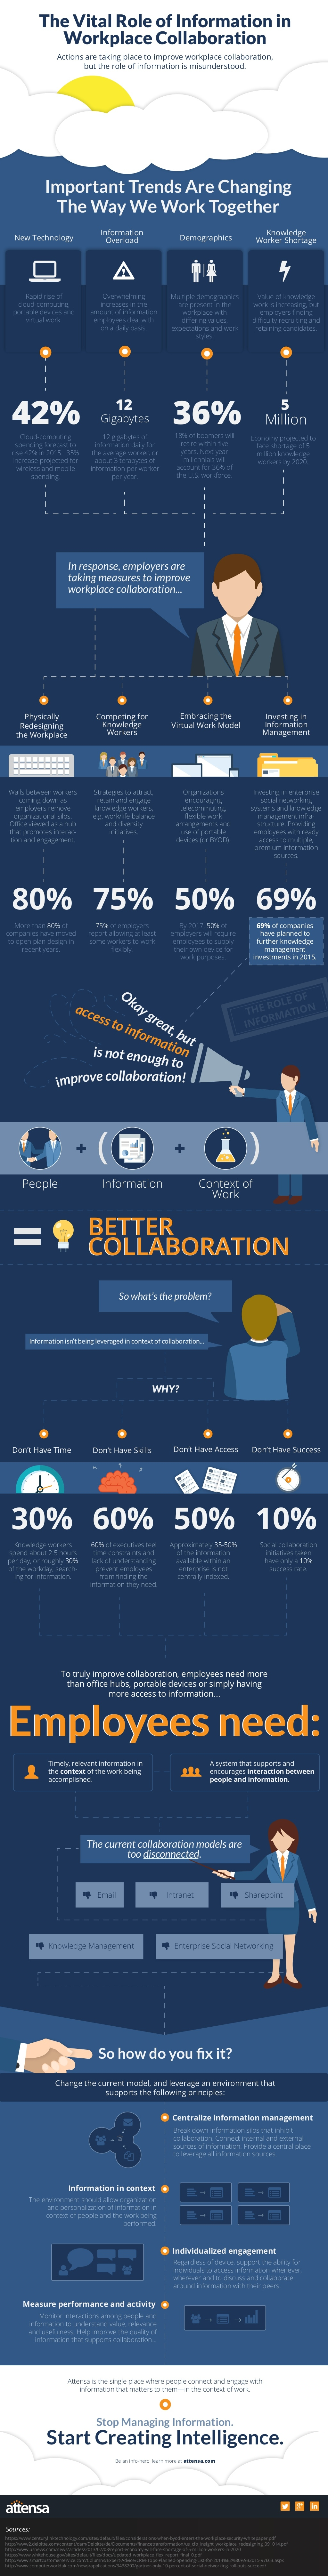 the_vital_role_of_information_in_workplace_collaboration_1_1024.jpg